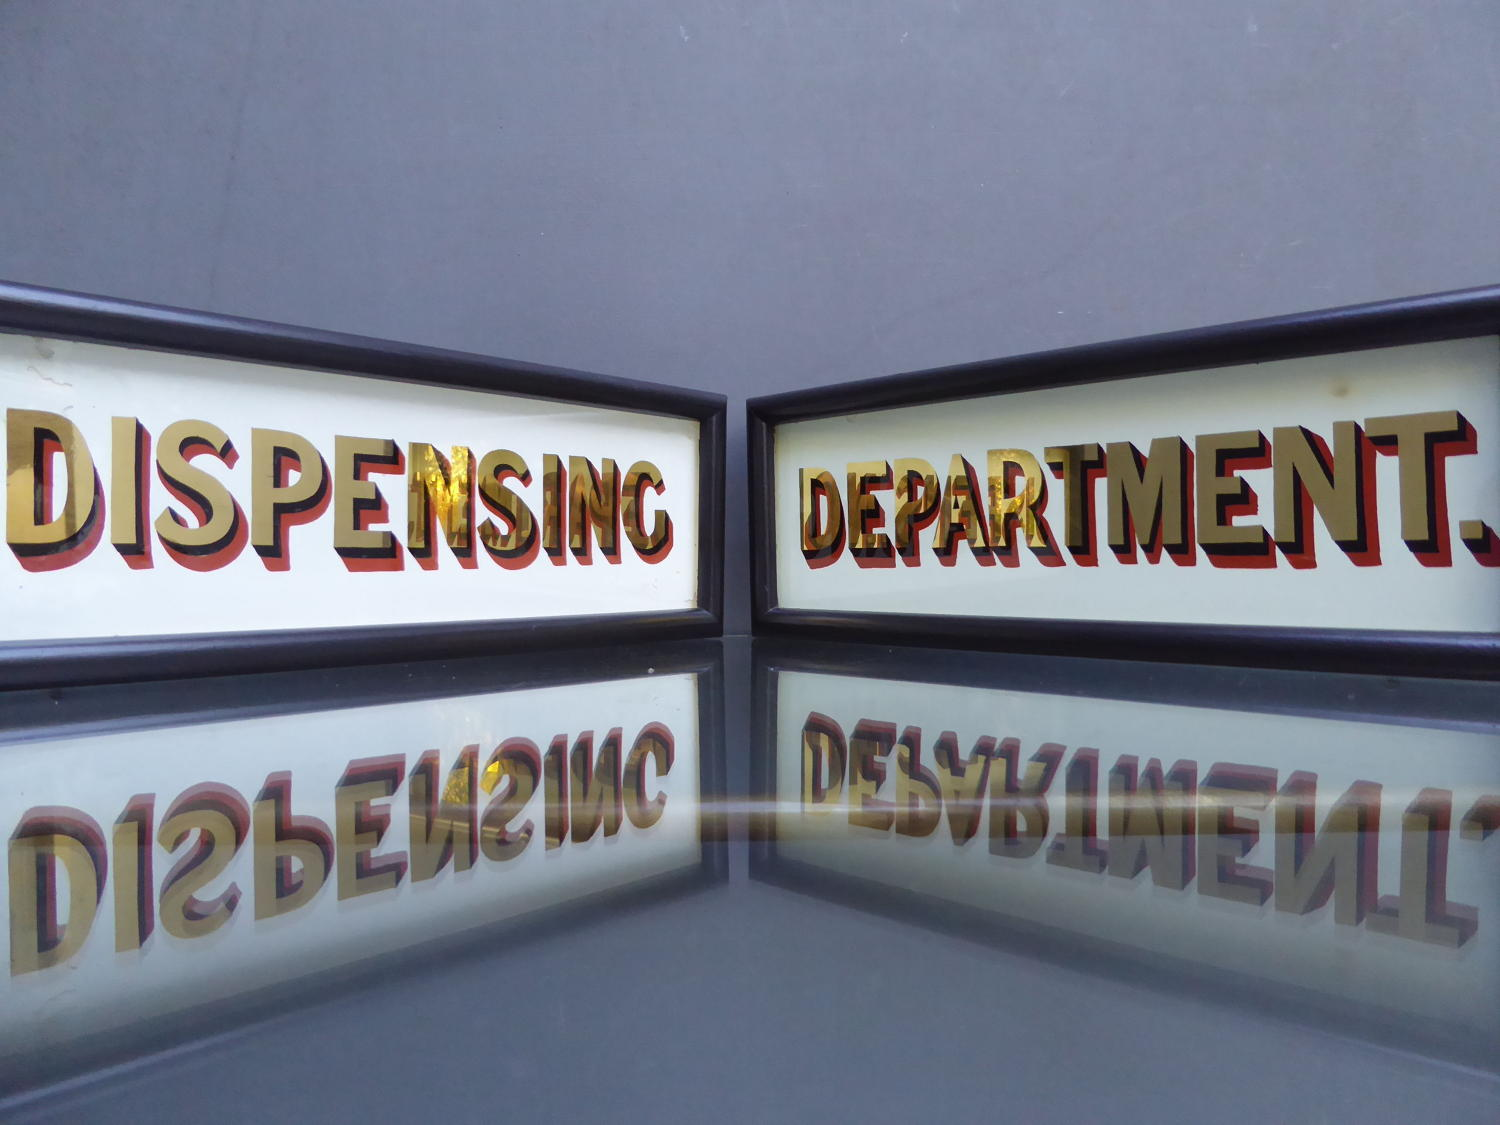 Dispensing Department